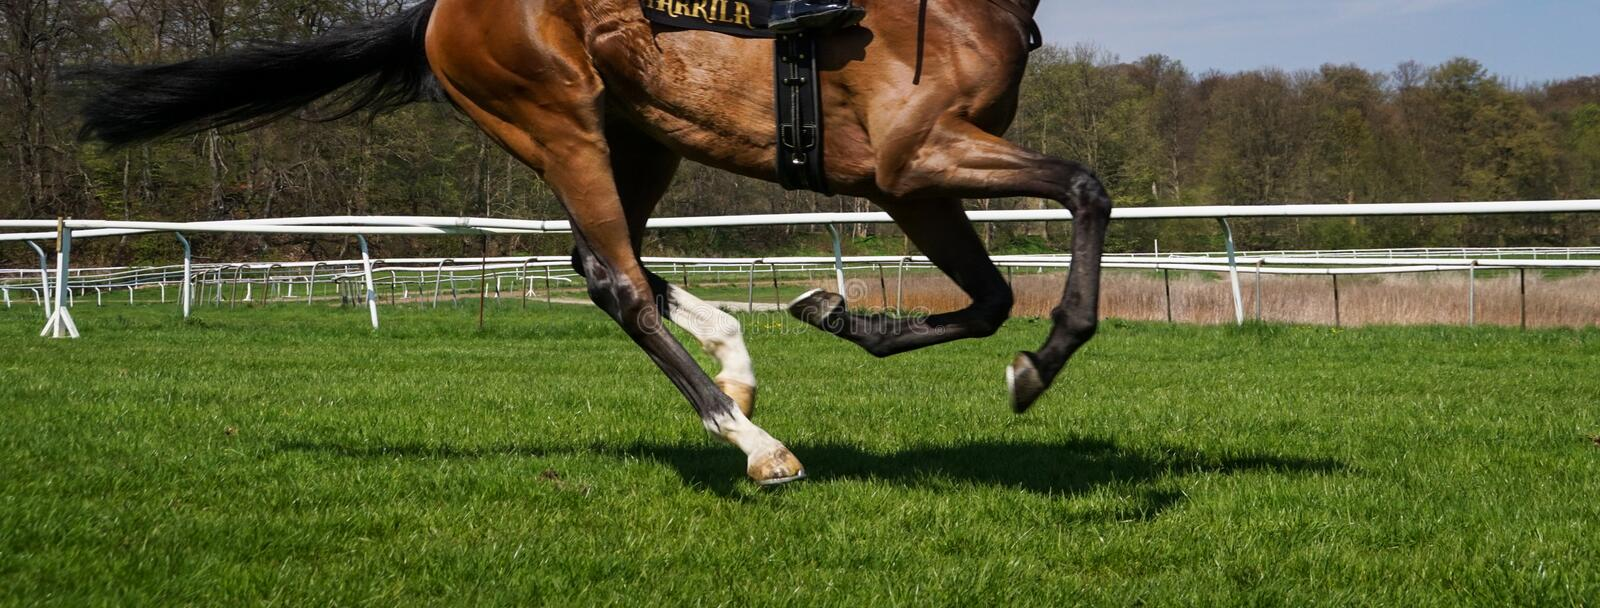 Racehorse on grass track royalty free stock photo